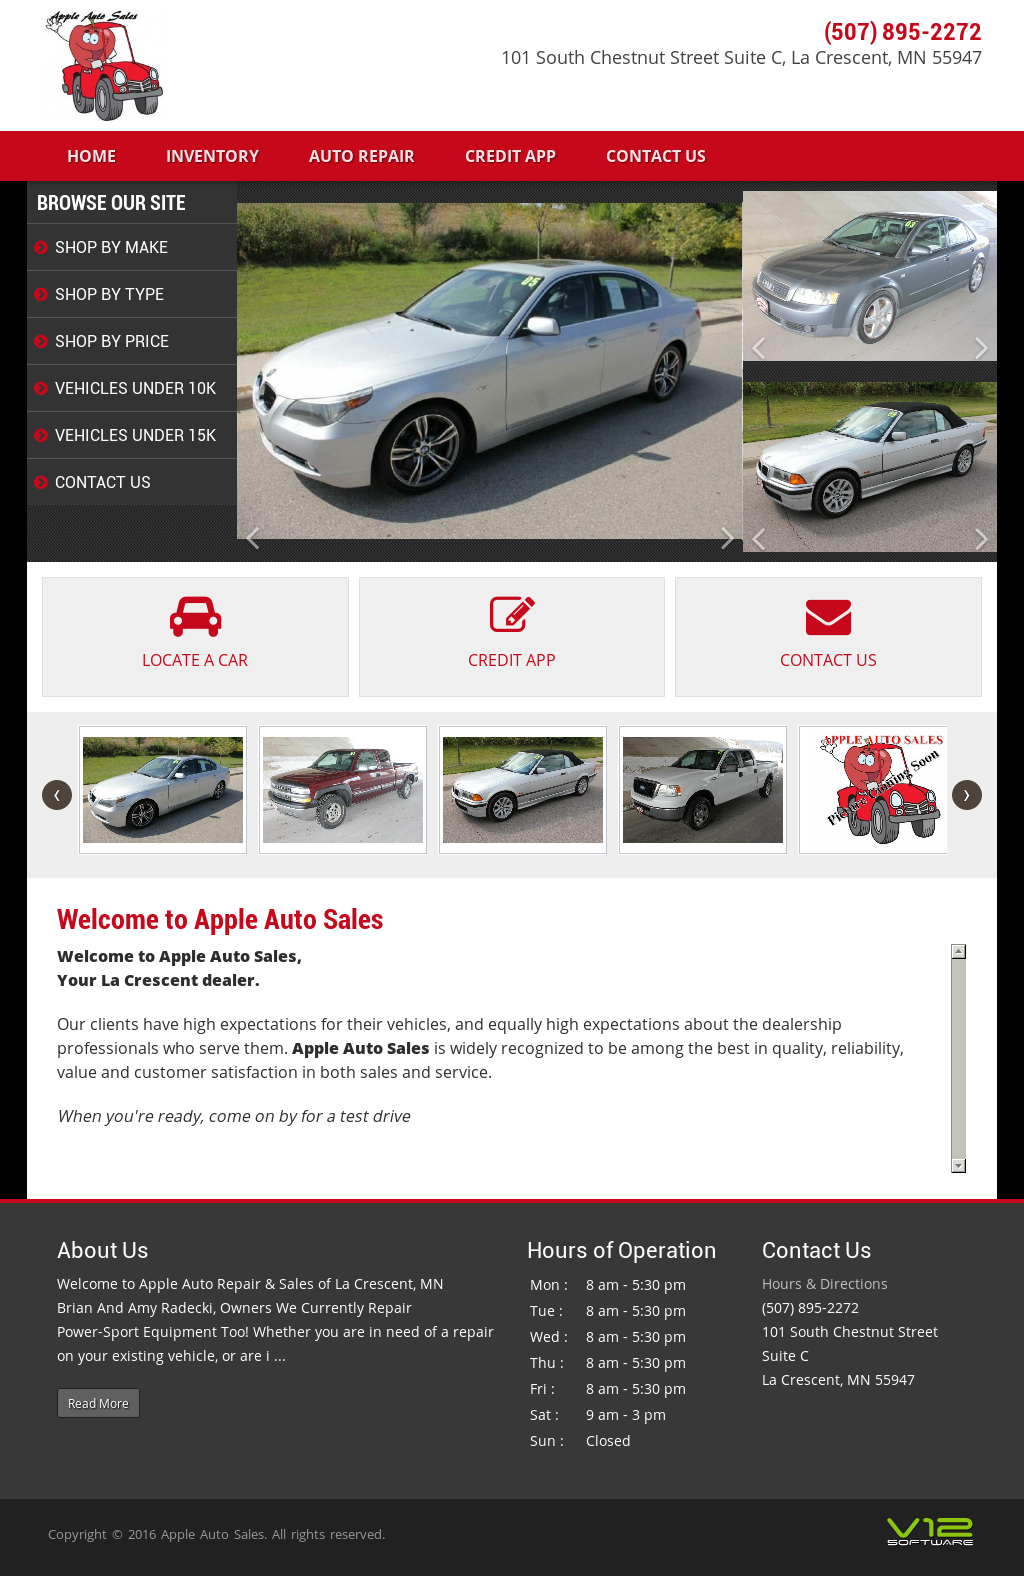 Apple Auto Sales >> Apple Auto Repair And Sales Competitors Revenue And